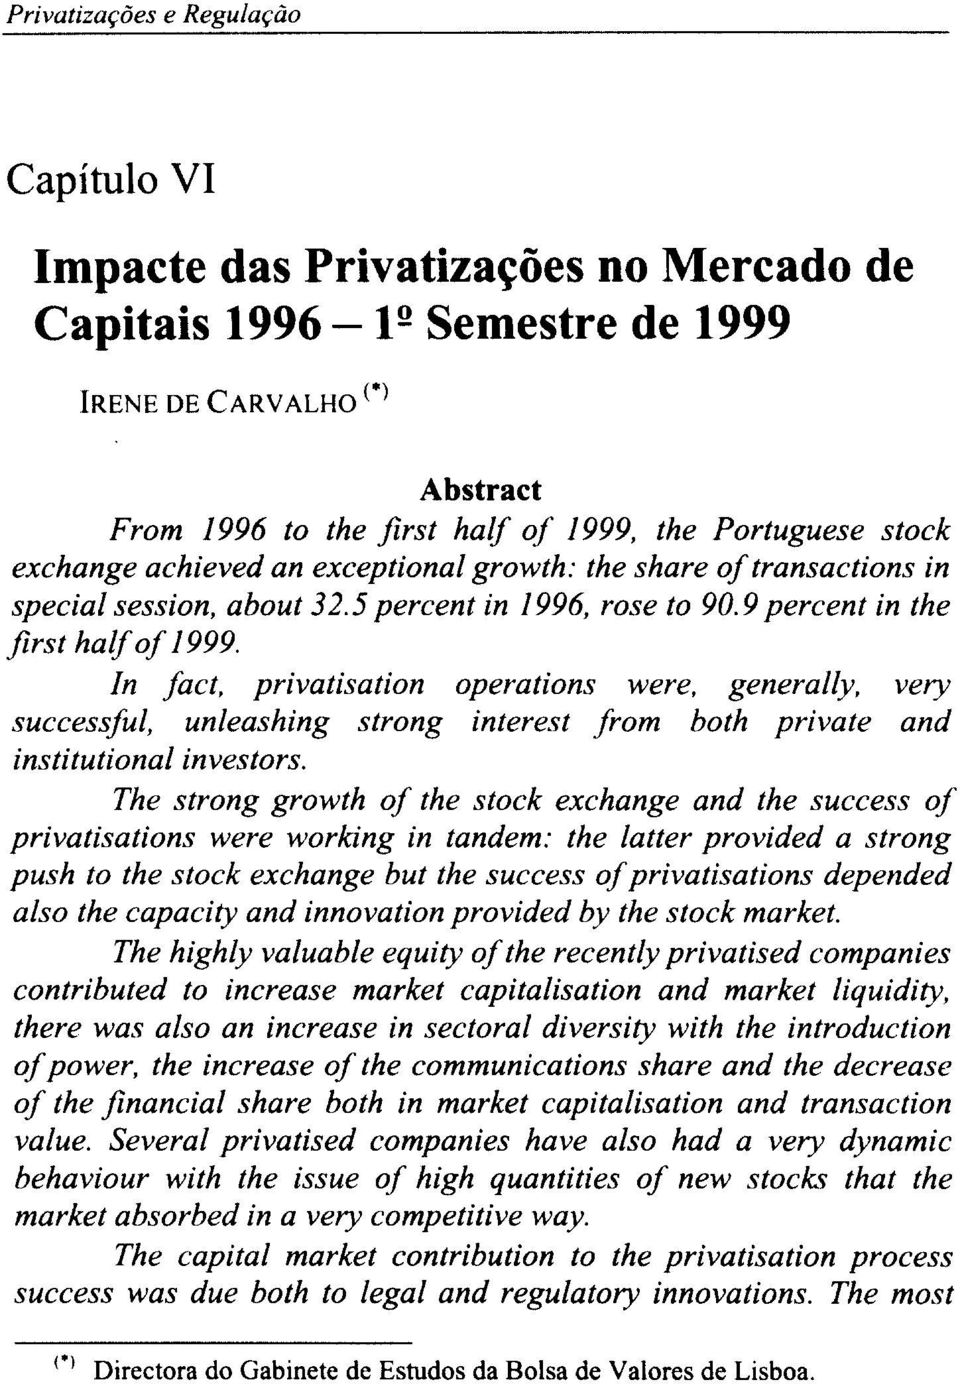 In fact, privatisation operations were, generally, very successful, unleashing strong interest from both private and institutional investors.